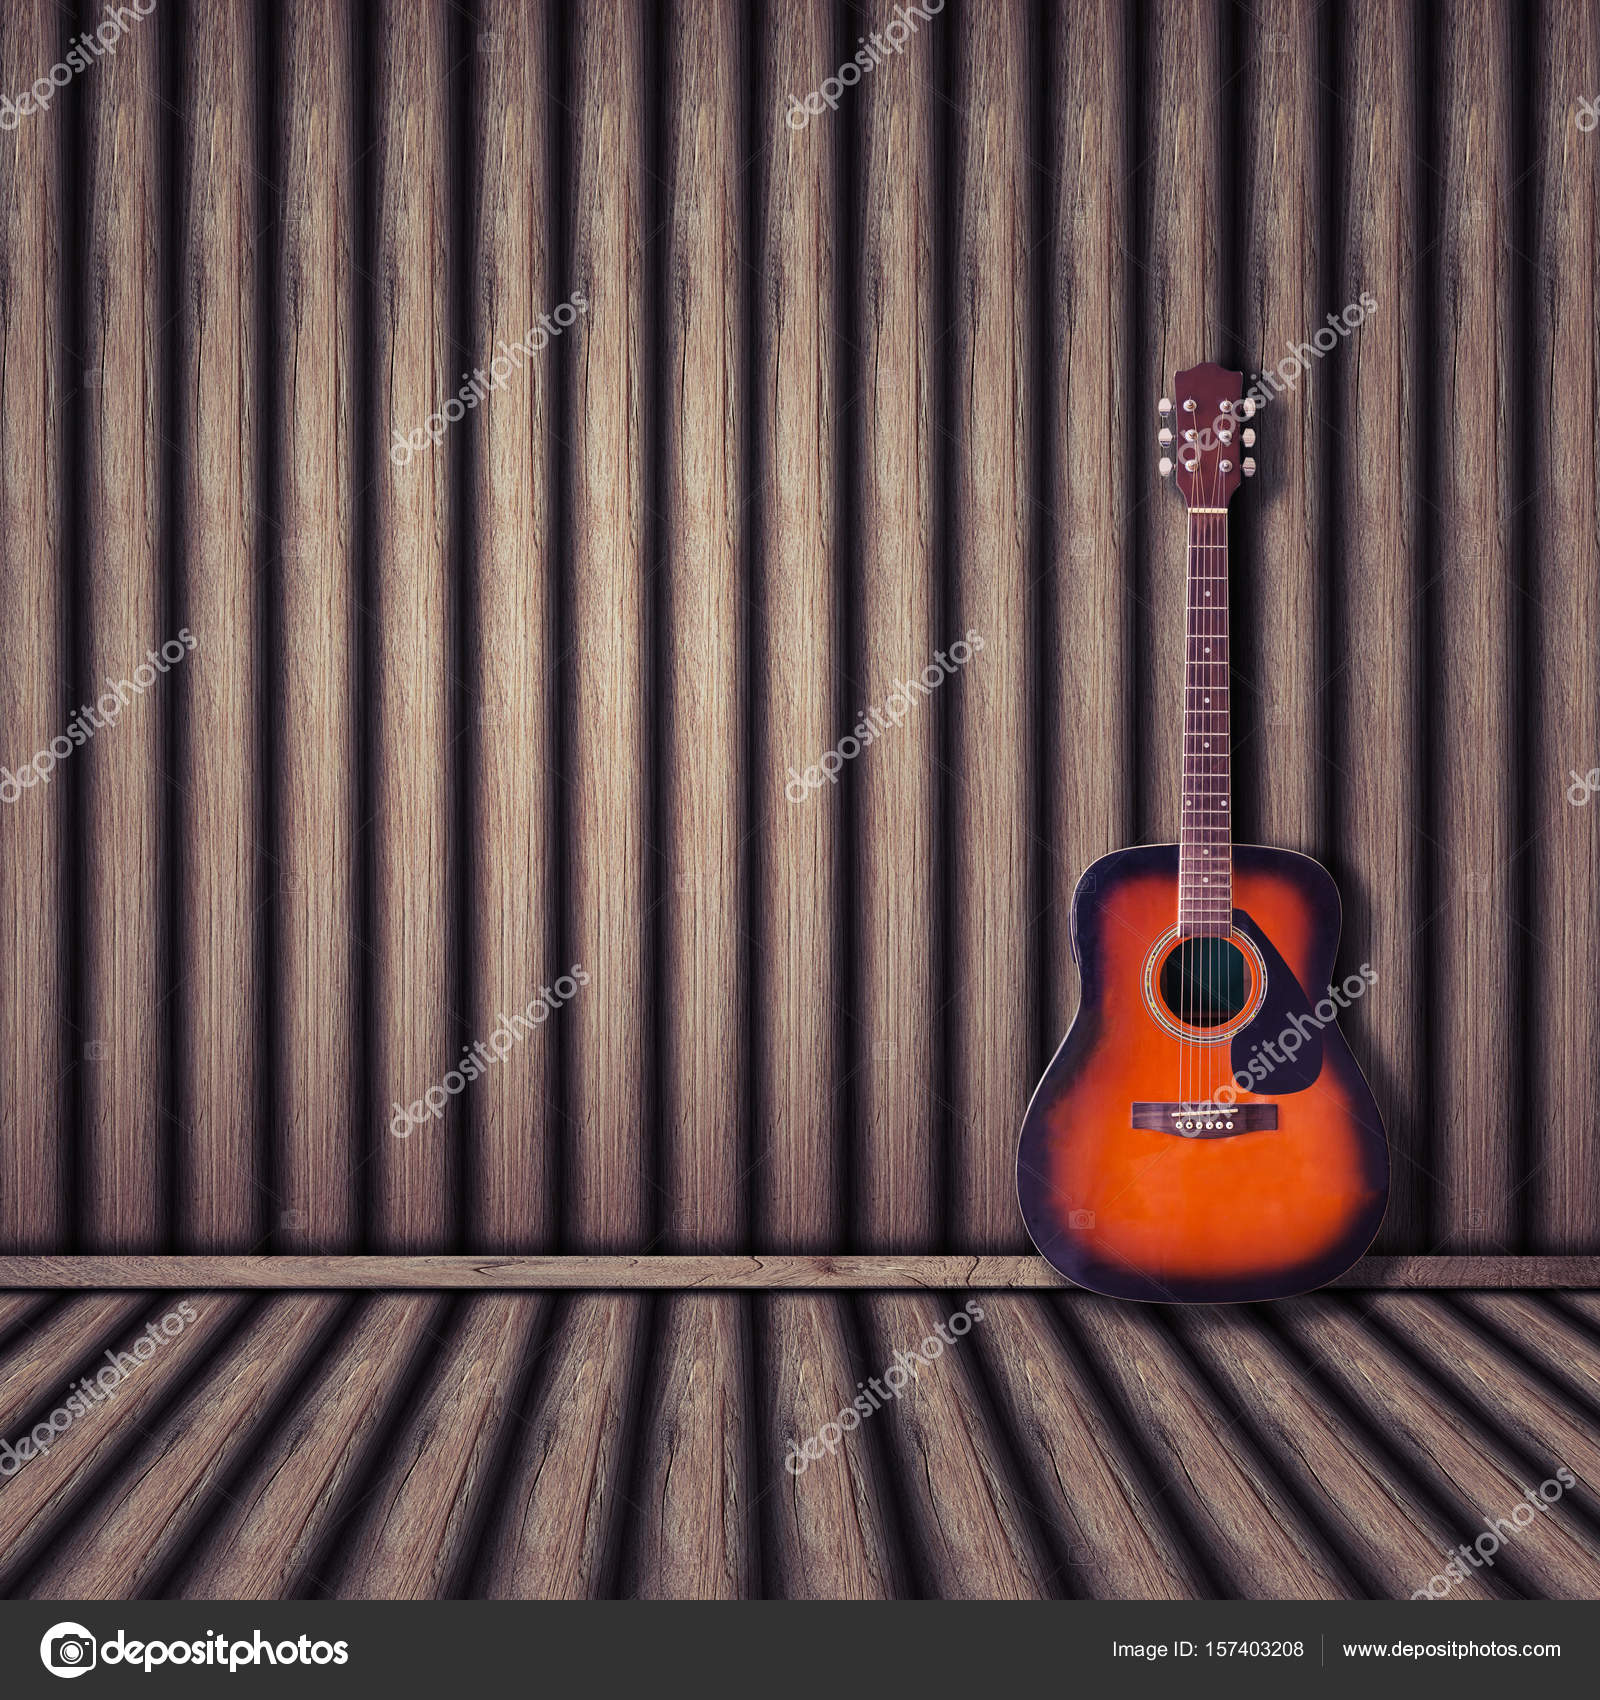 fond bois de guitare acoustique style vintage photographie releon8211 157403208. Black Bedroom Furniture Sets. Home Design Ideas